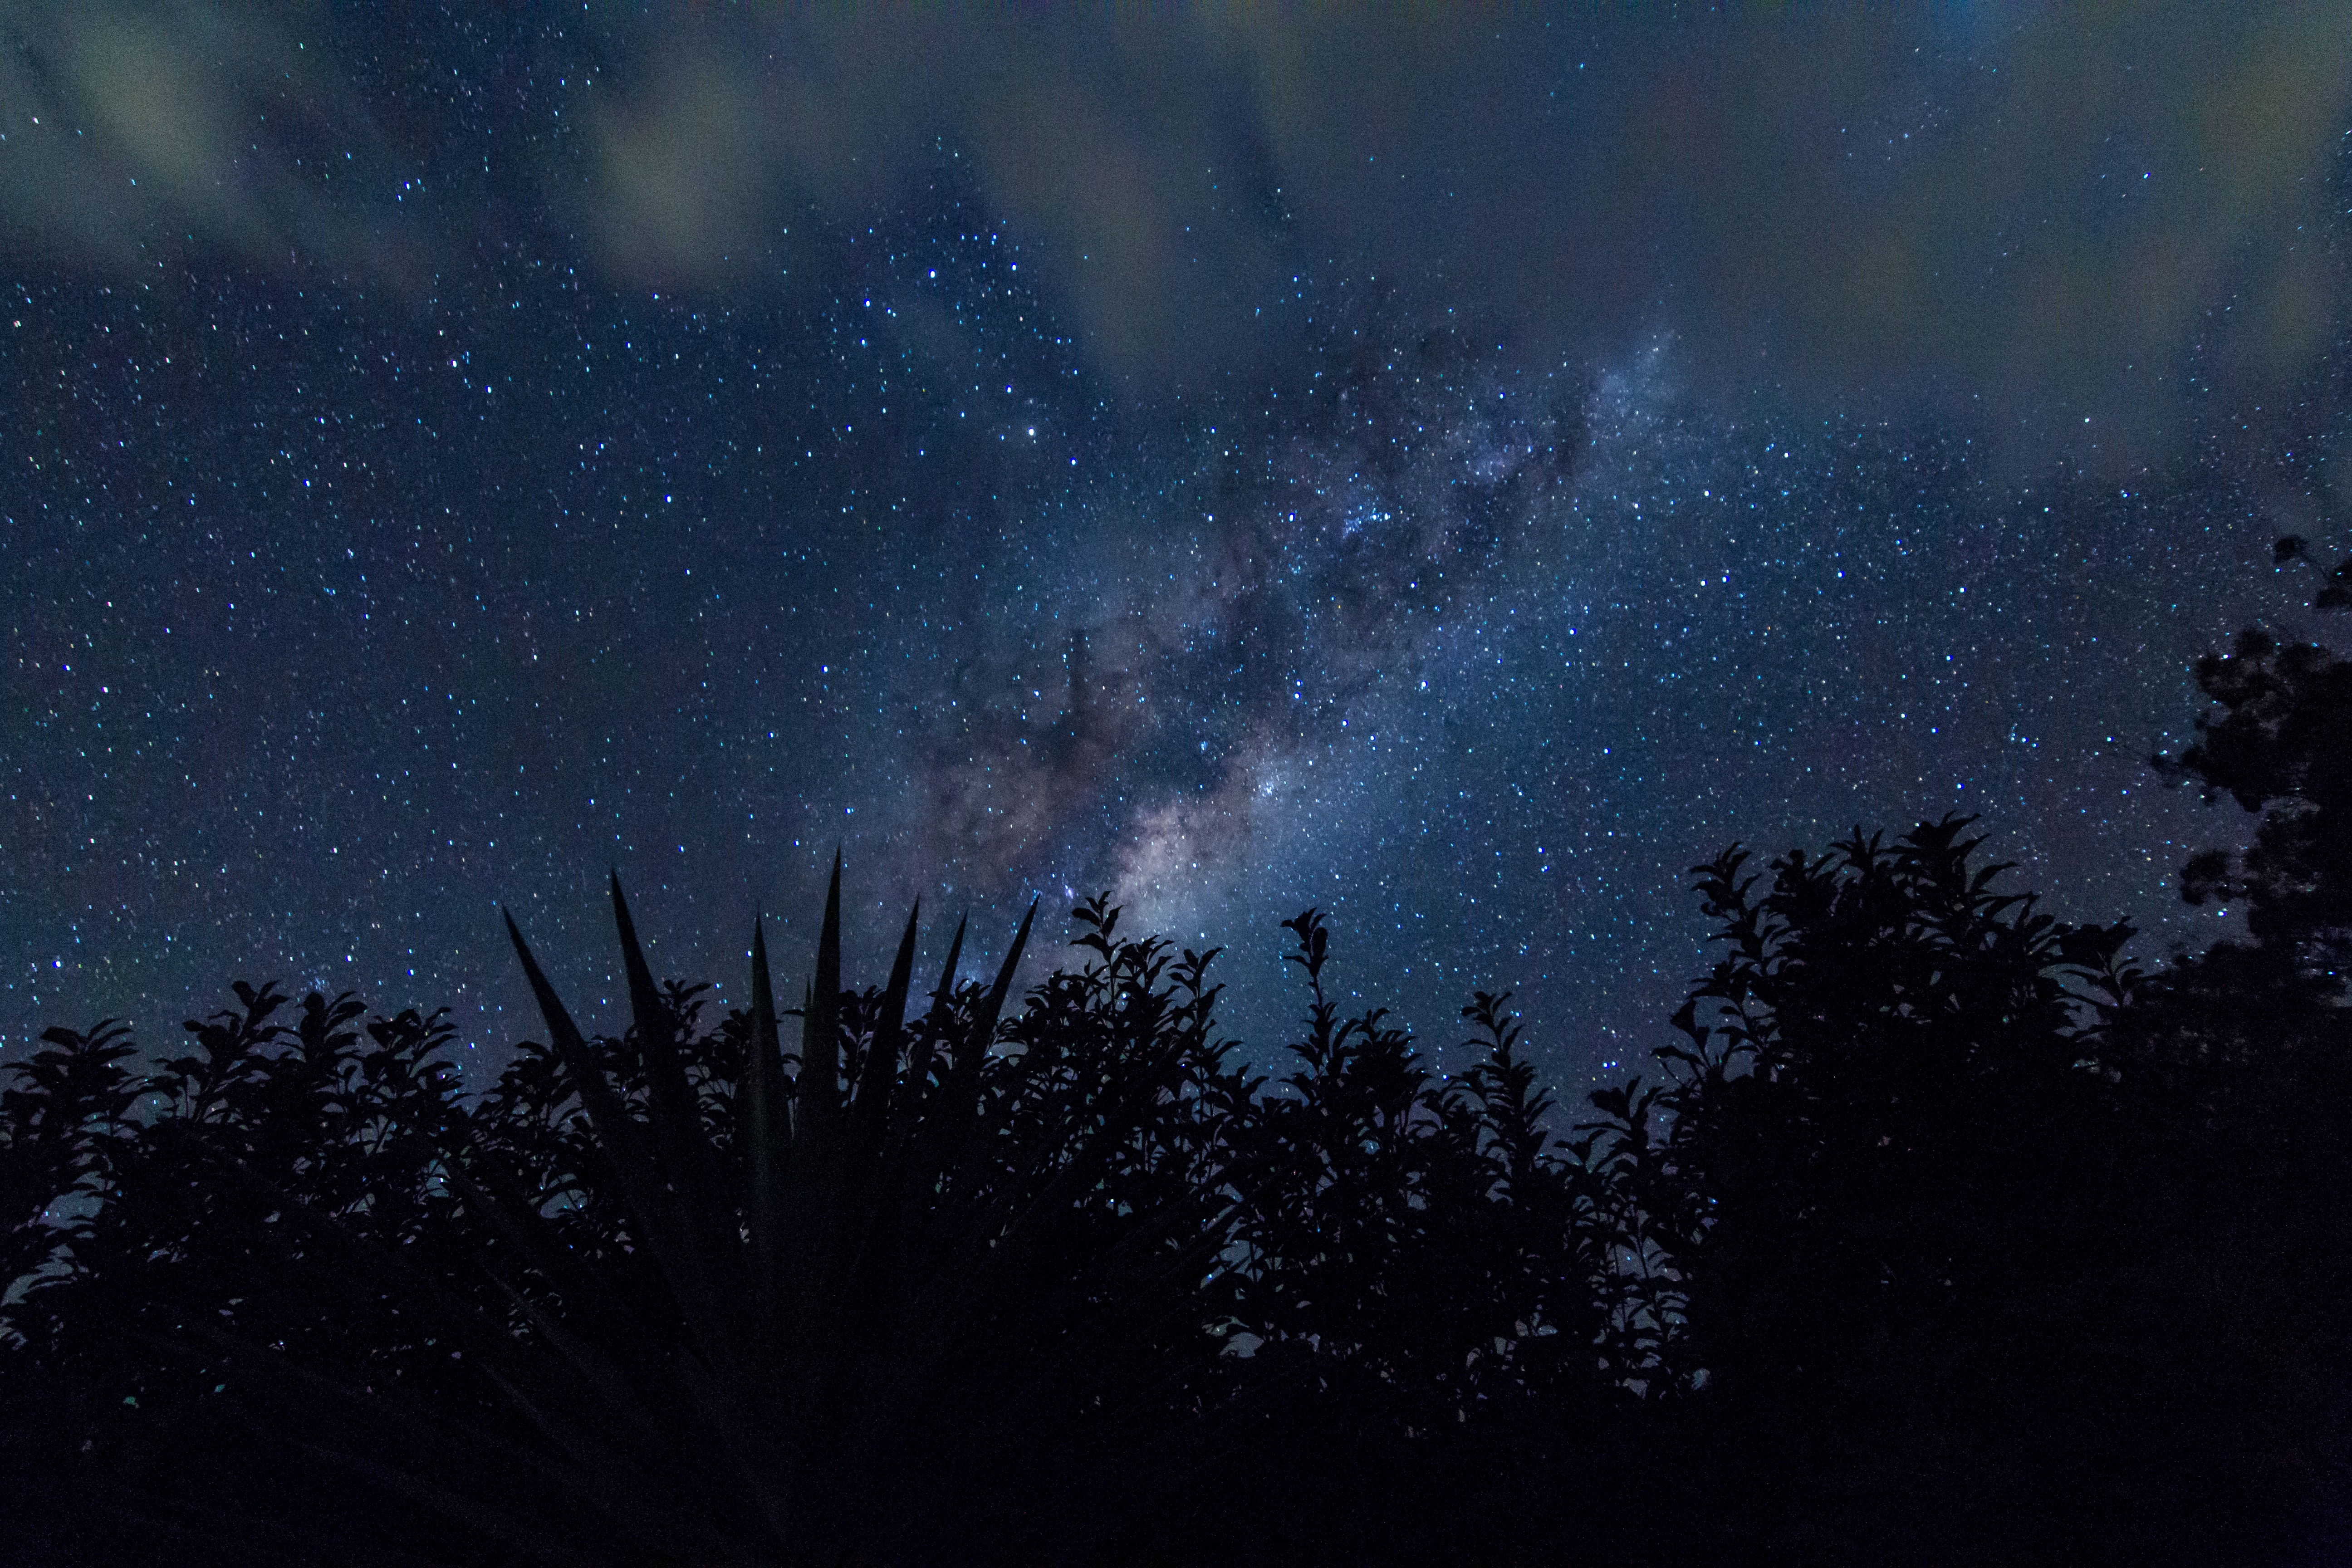 silhouette of trees with stars